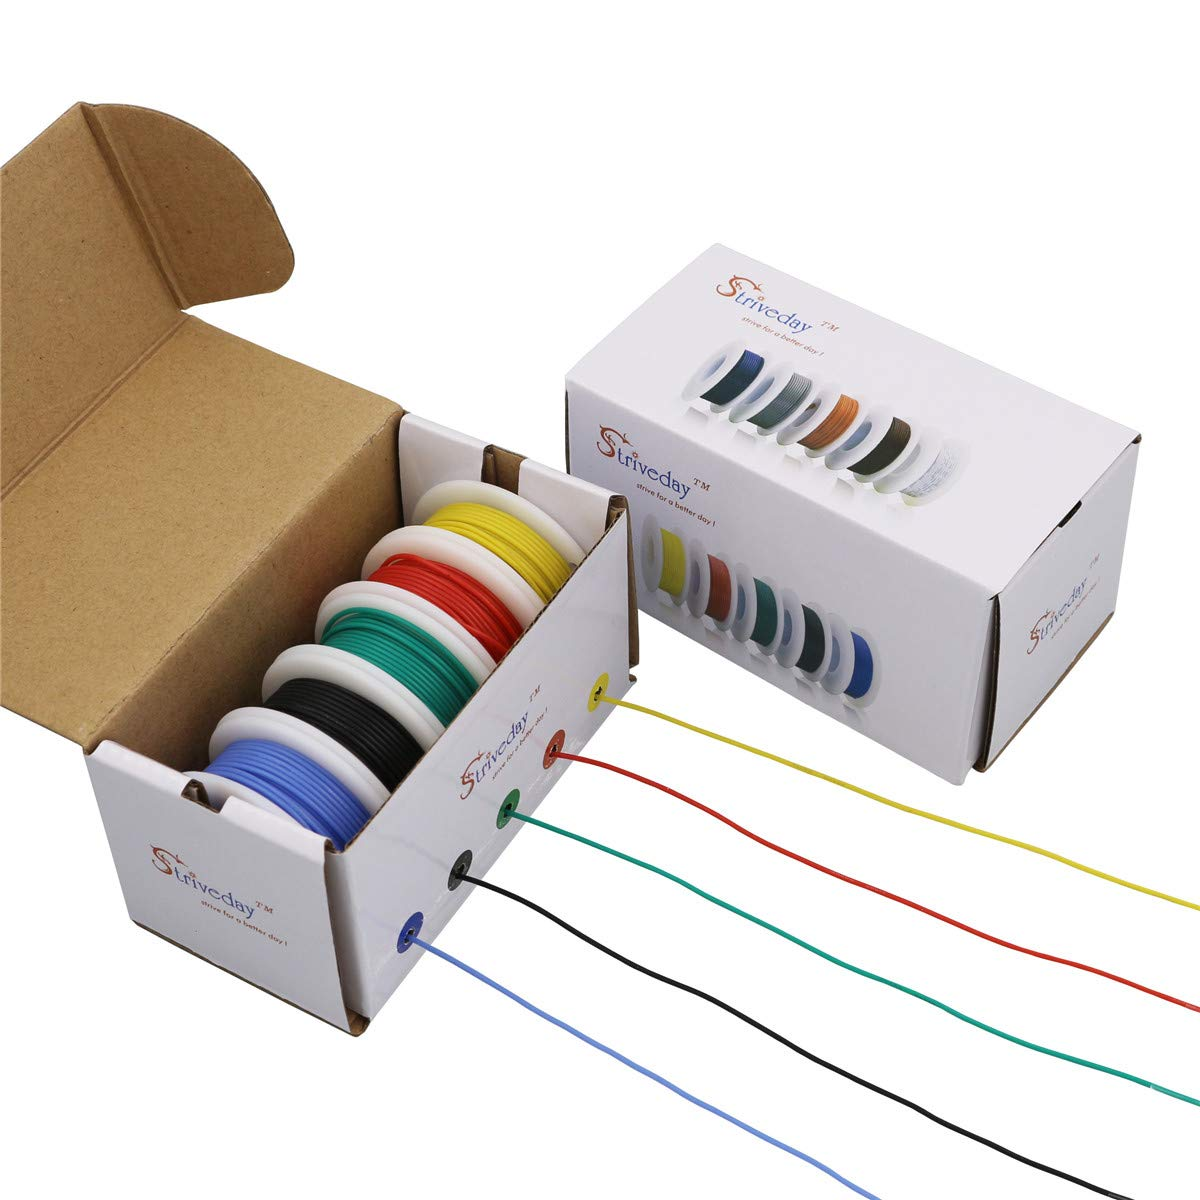 StrivedayTMFlexible Silicone Wire 18awg Electric wire 18 gauge Coper Hook Up Wire 300V Cables electronic stranded wire cable electrics DIY BOX-1